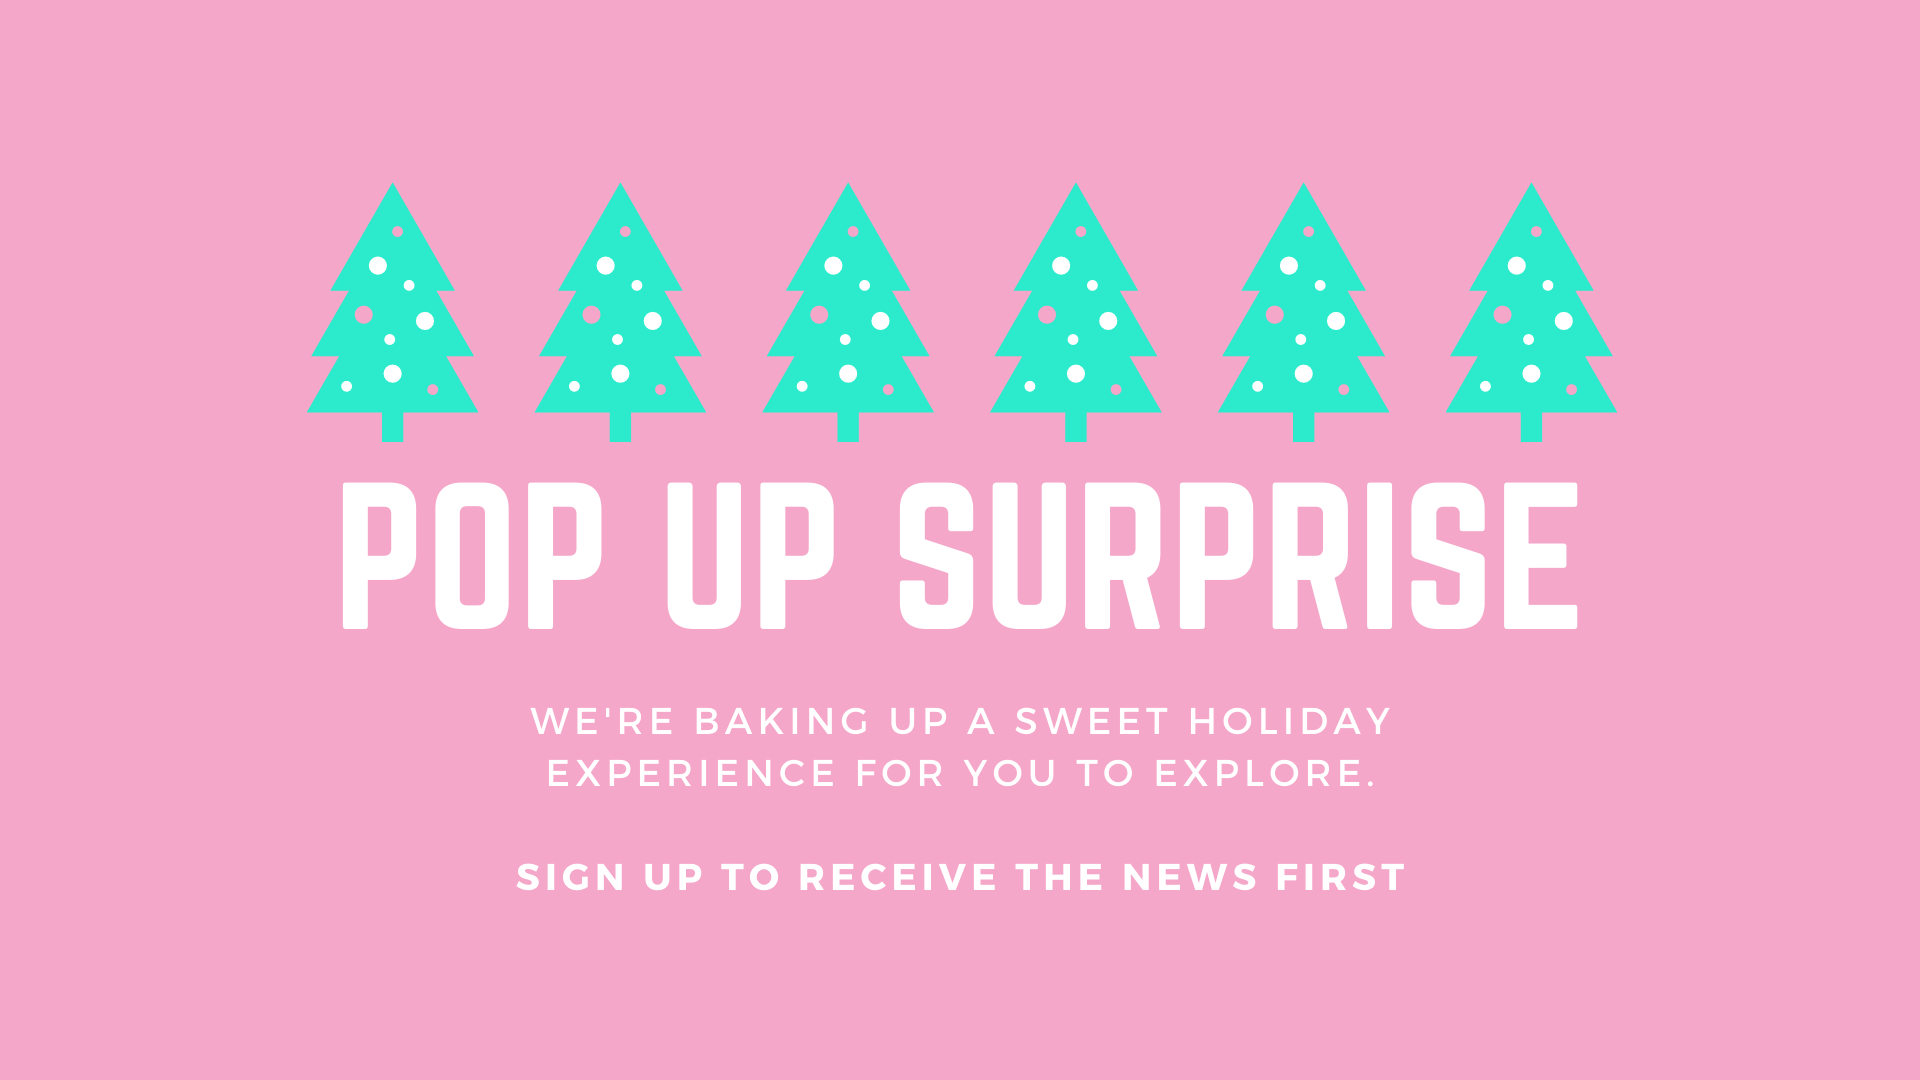 Holiday Pop Up Surprise